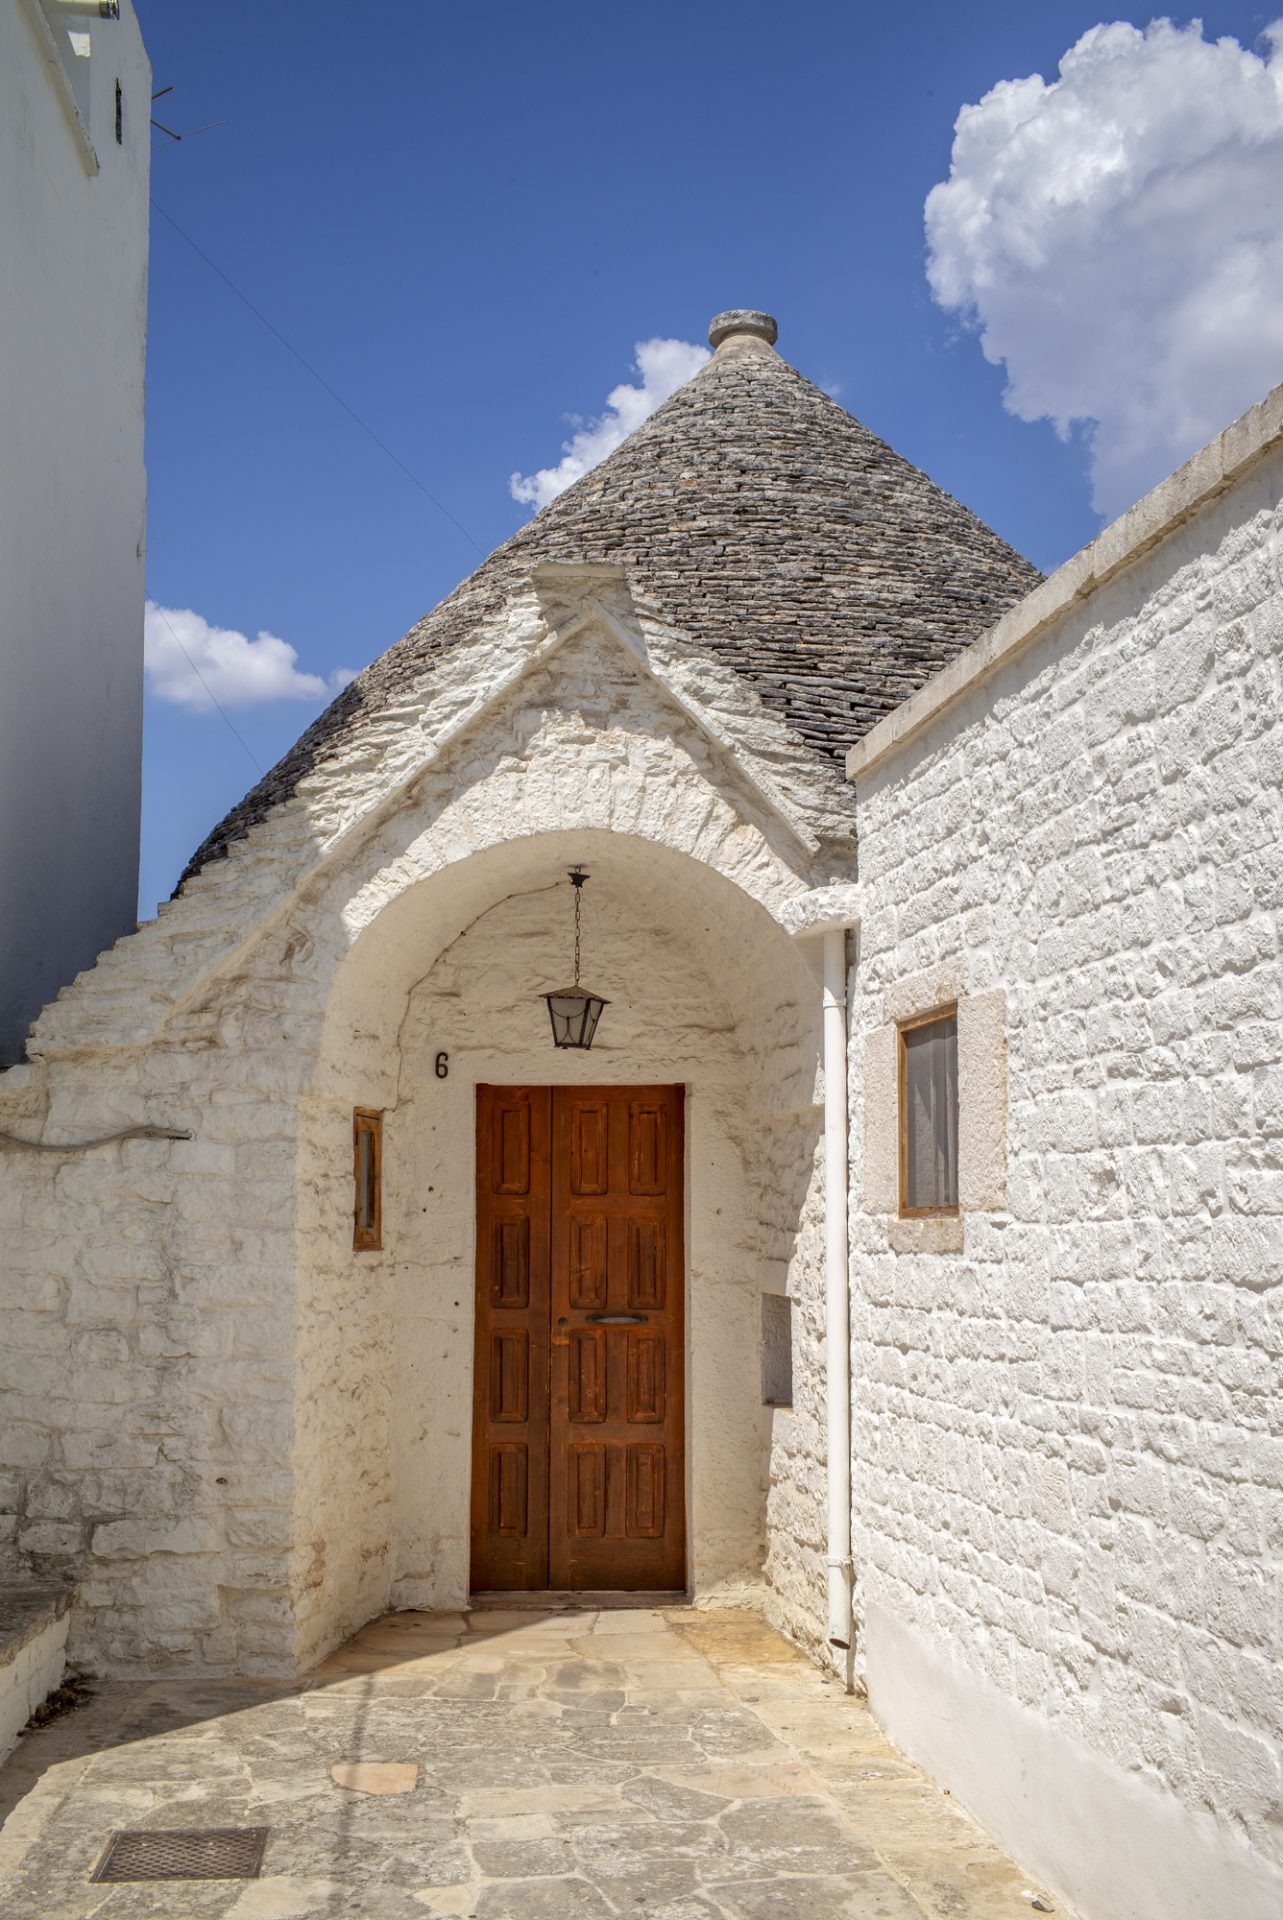 Trullo Home, Alberobello, Italy, August 13, 2018